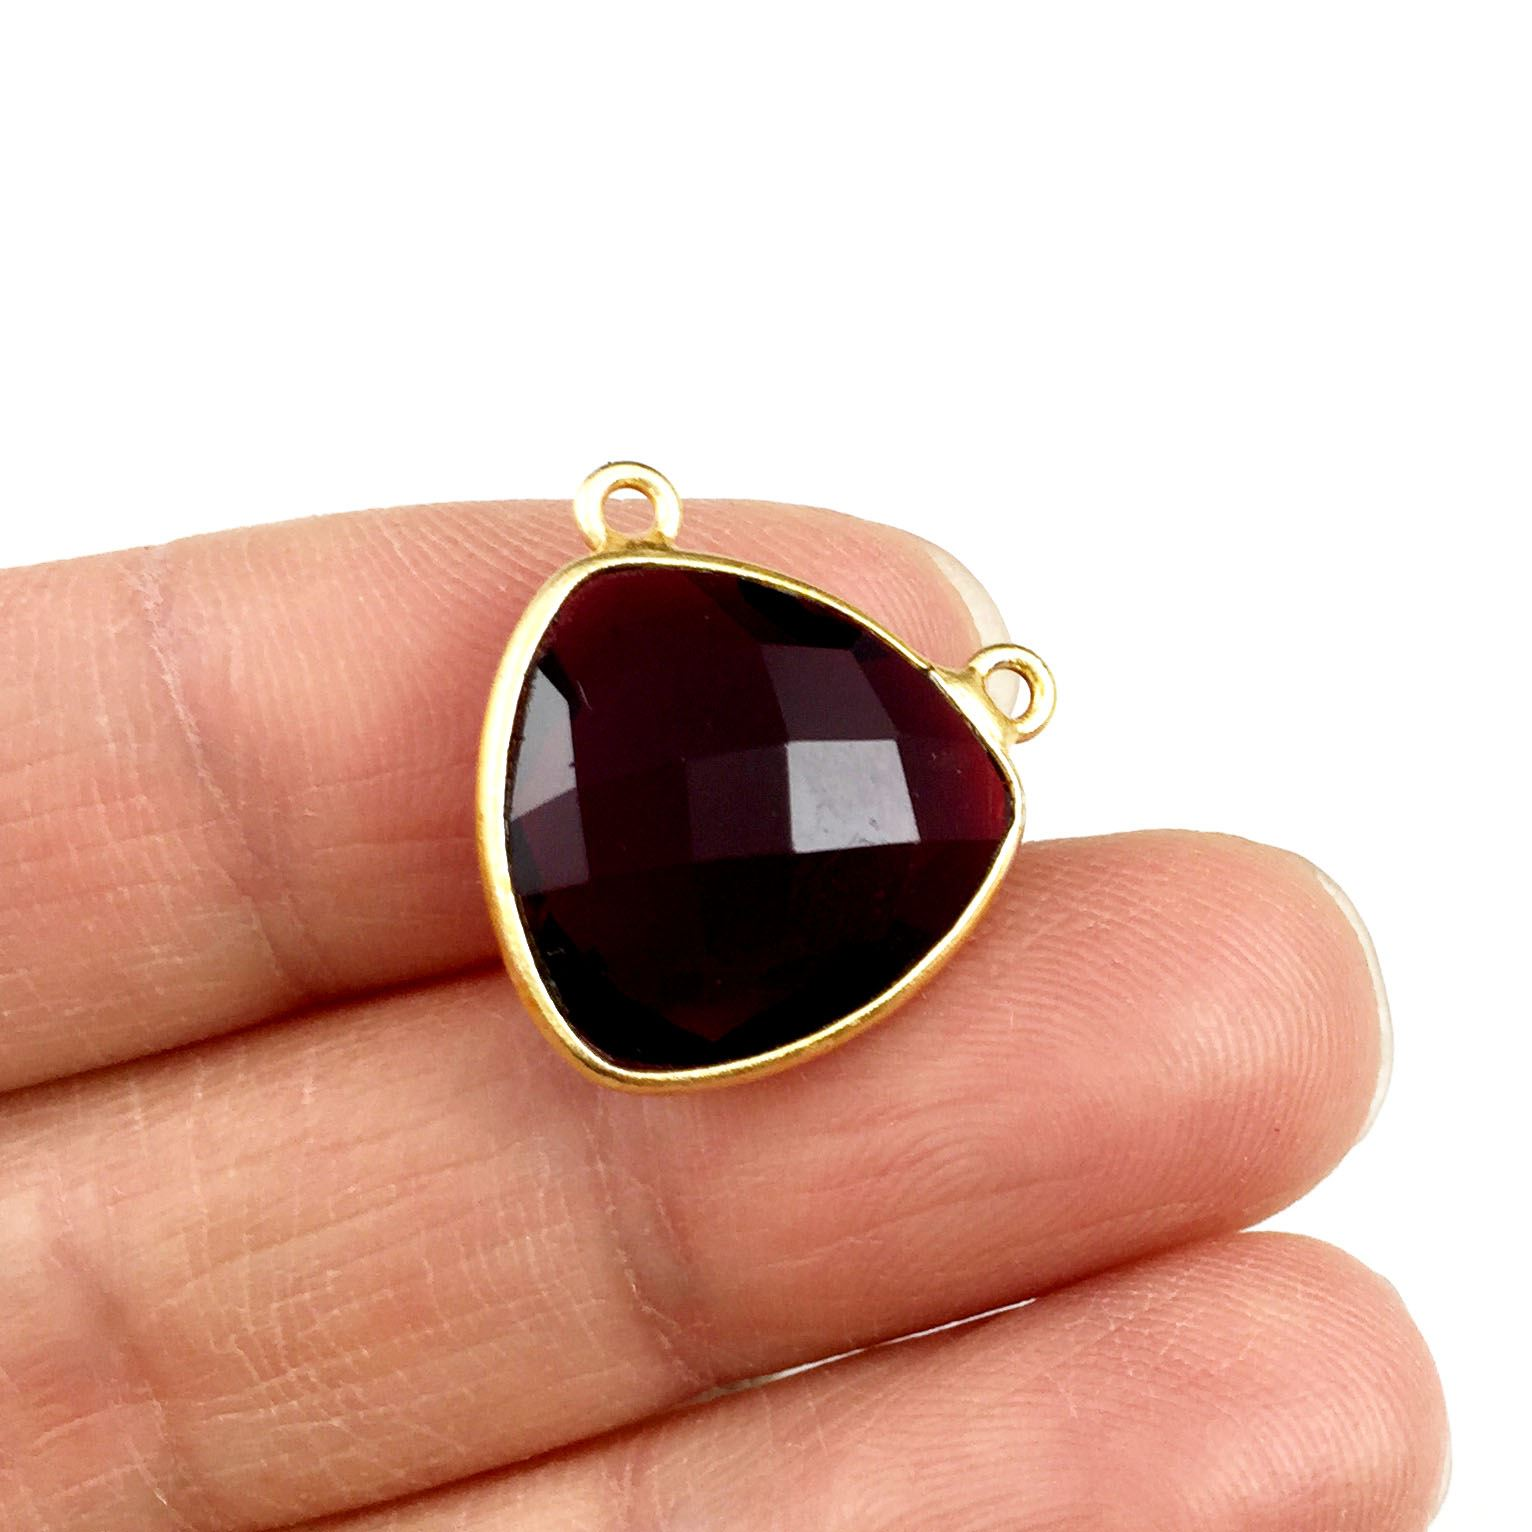 Bezel Gemstone Connector Pendant - Garnet Quartz - Gold plated Sterling Silver - Small Trillion Shaped Faceted - 15mm - 1 piece